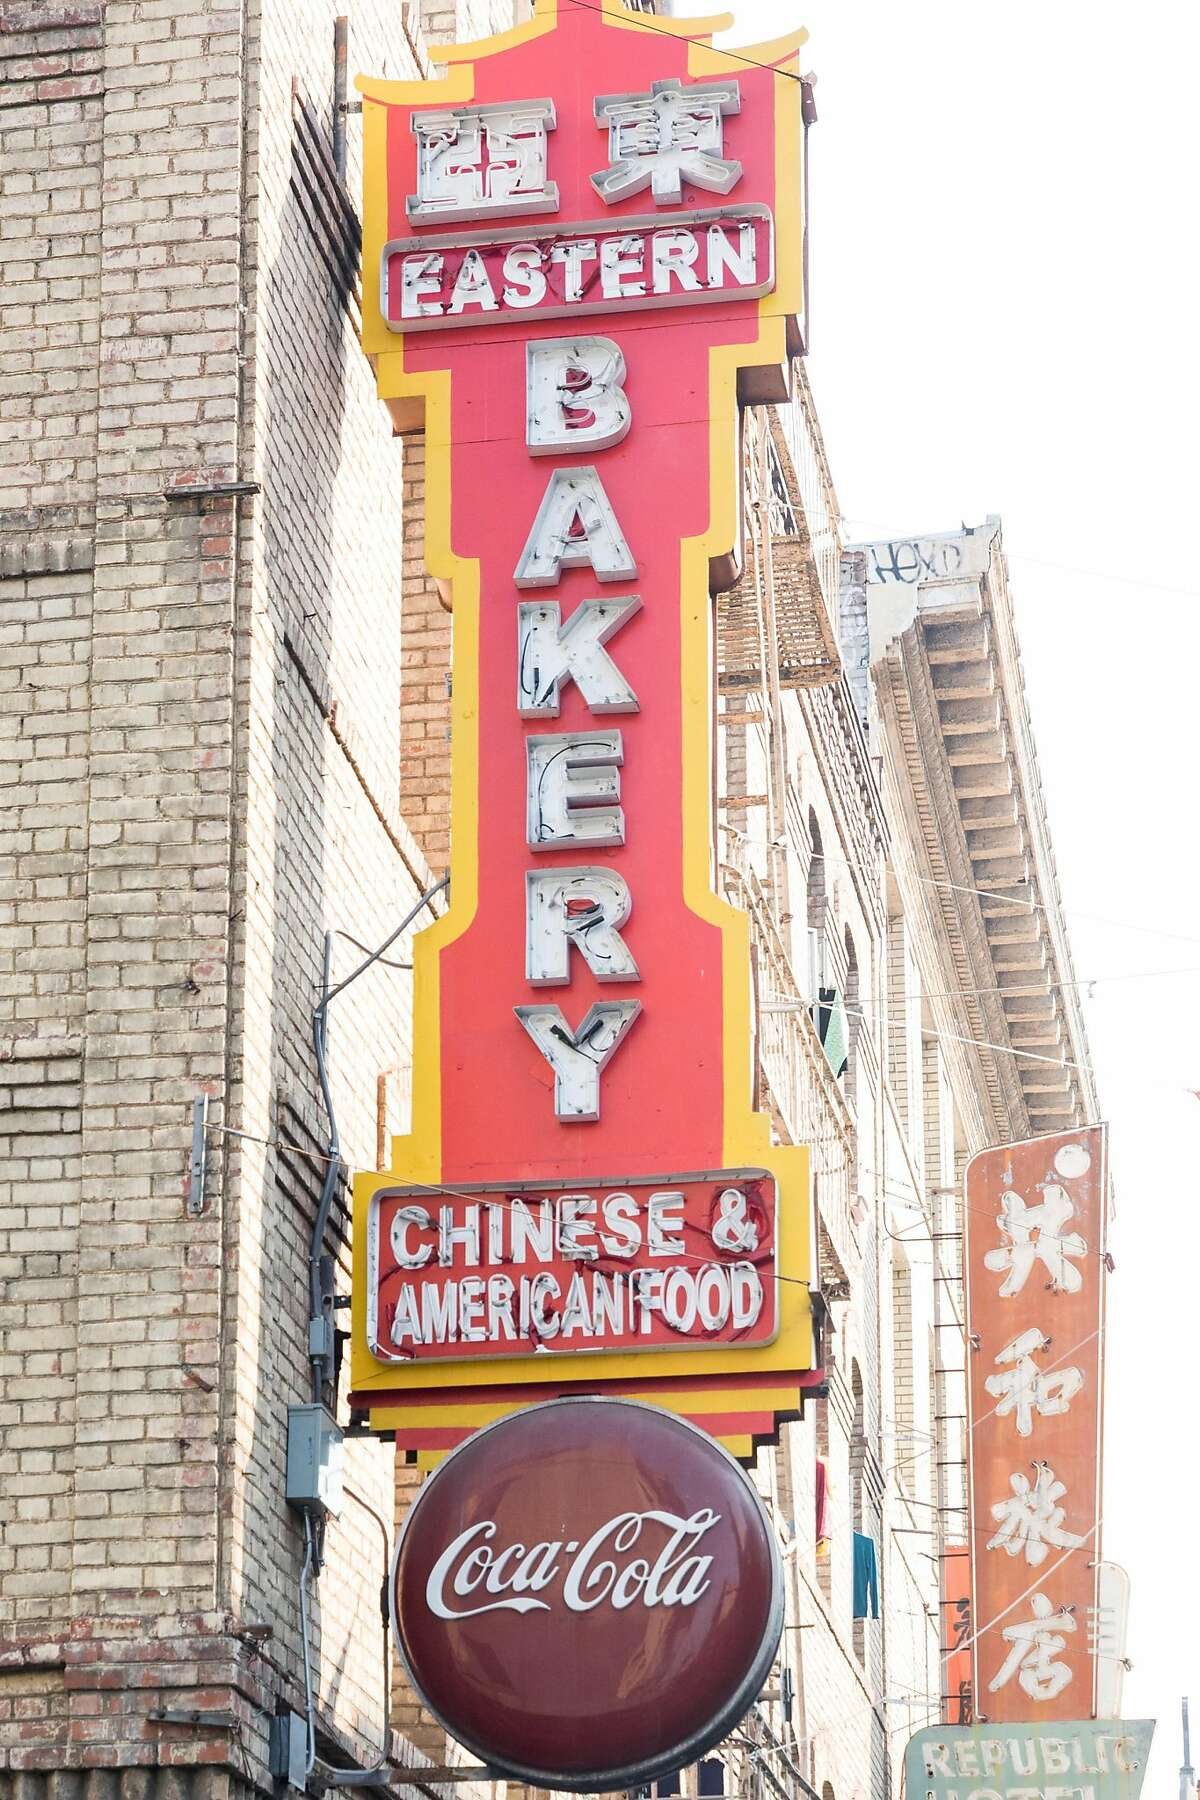 The neon sign for Eastern Bakery on Grant Avenue in San Francisco on Oct. 7, 2020. It is the oldest bakery in San Francisco's Chinatown.